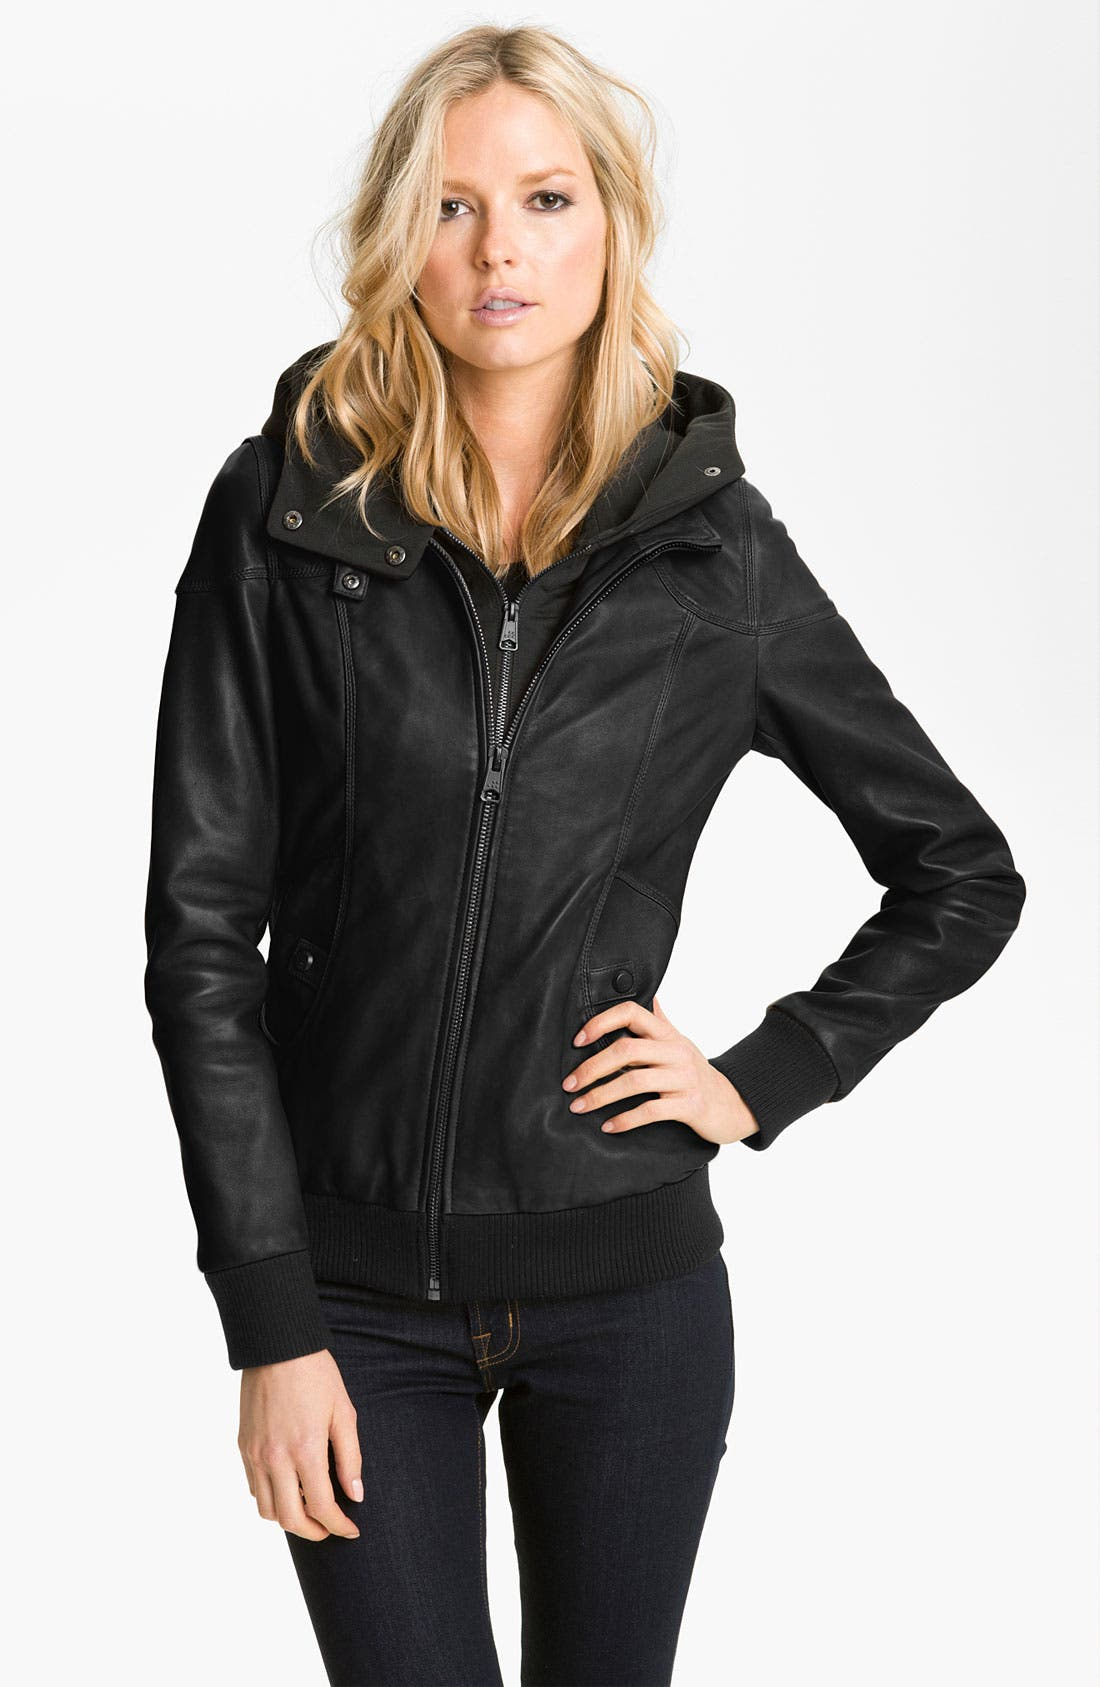 Alternate Image 1 Selected - Soia & Kyo Leather Jacket with Removable Hoodie Liner